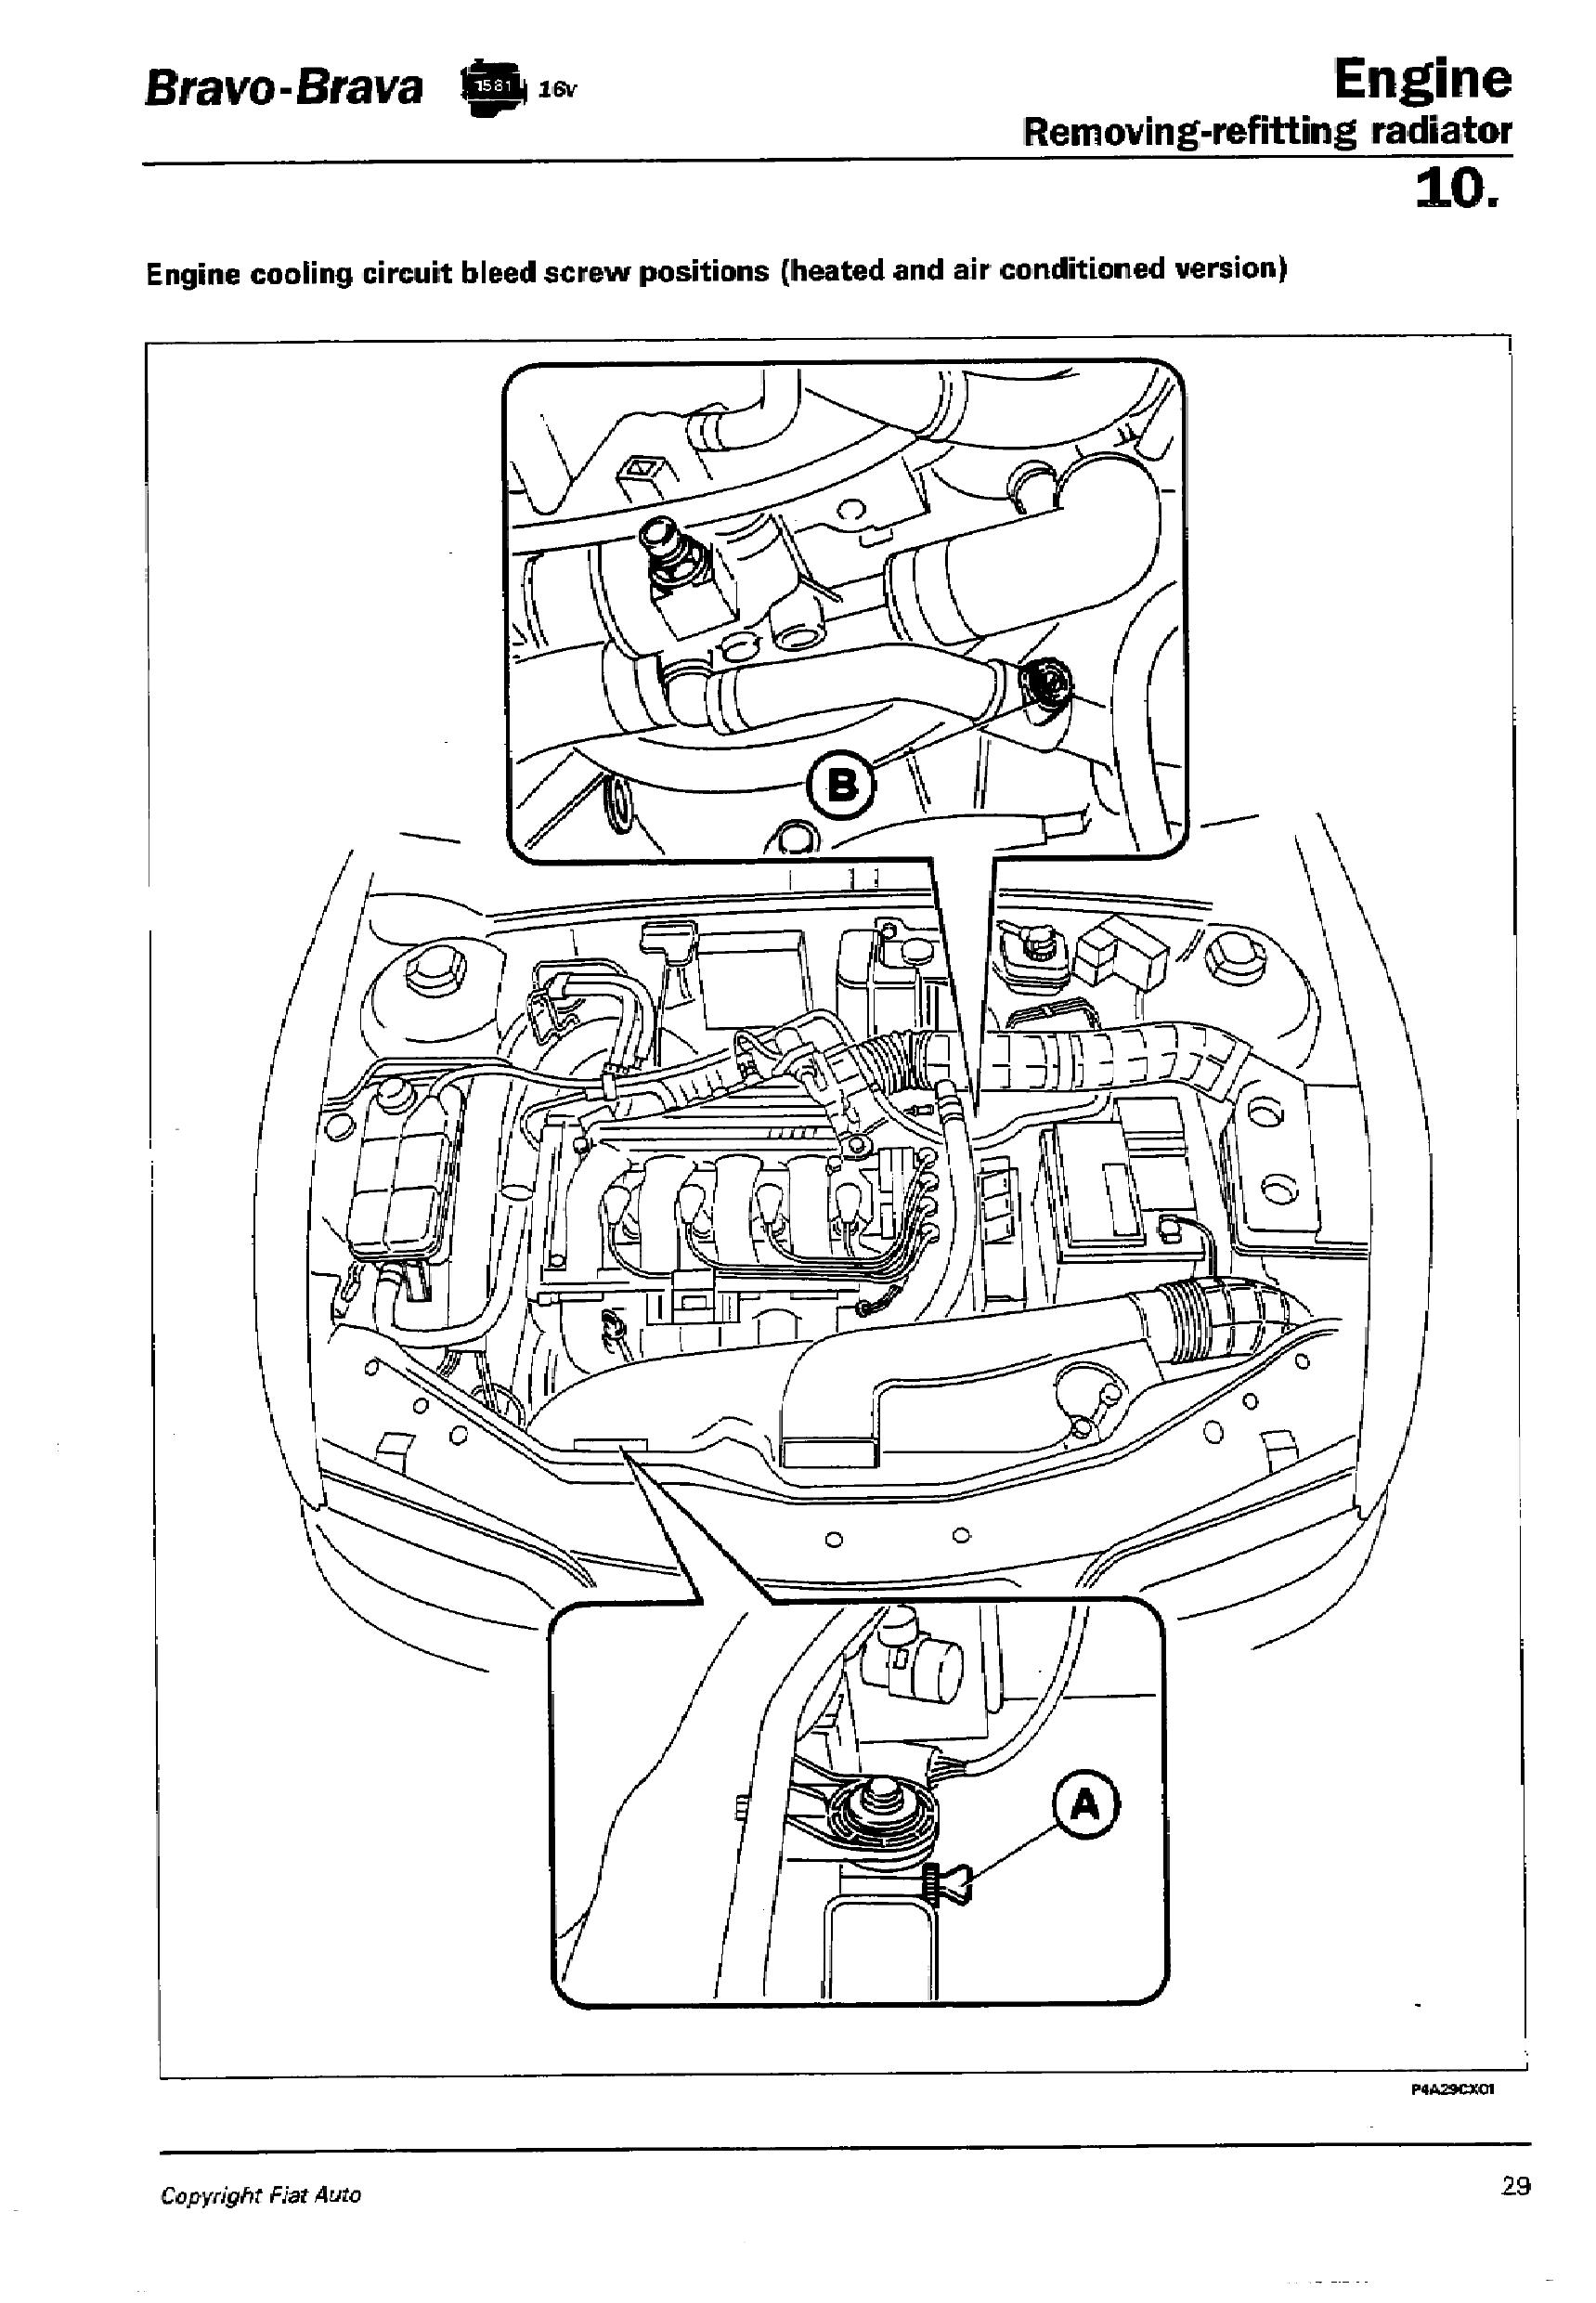 5 0 engine coolant diagram